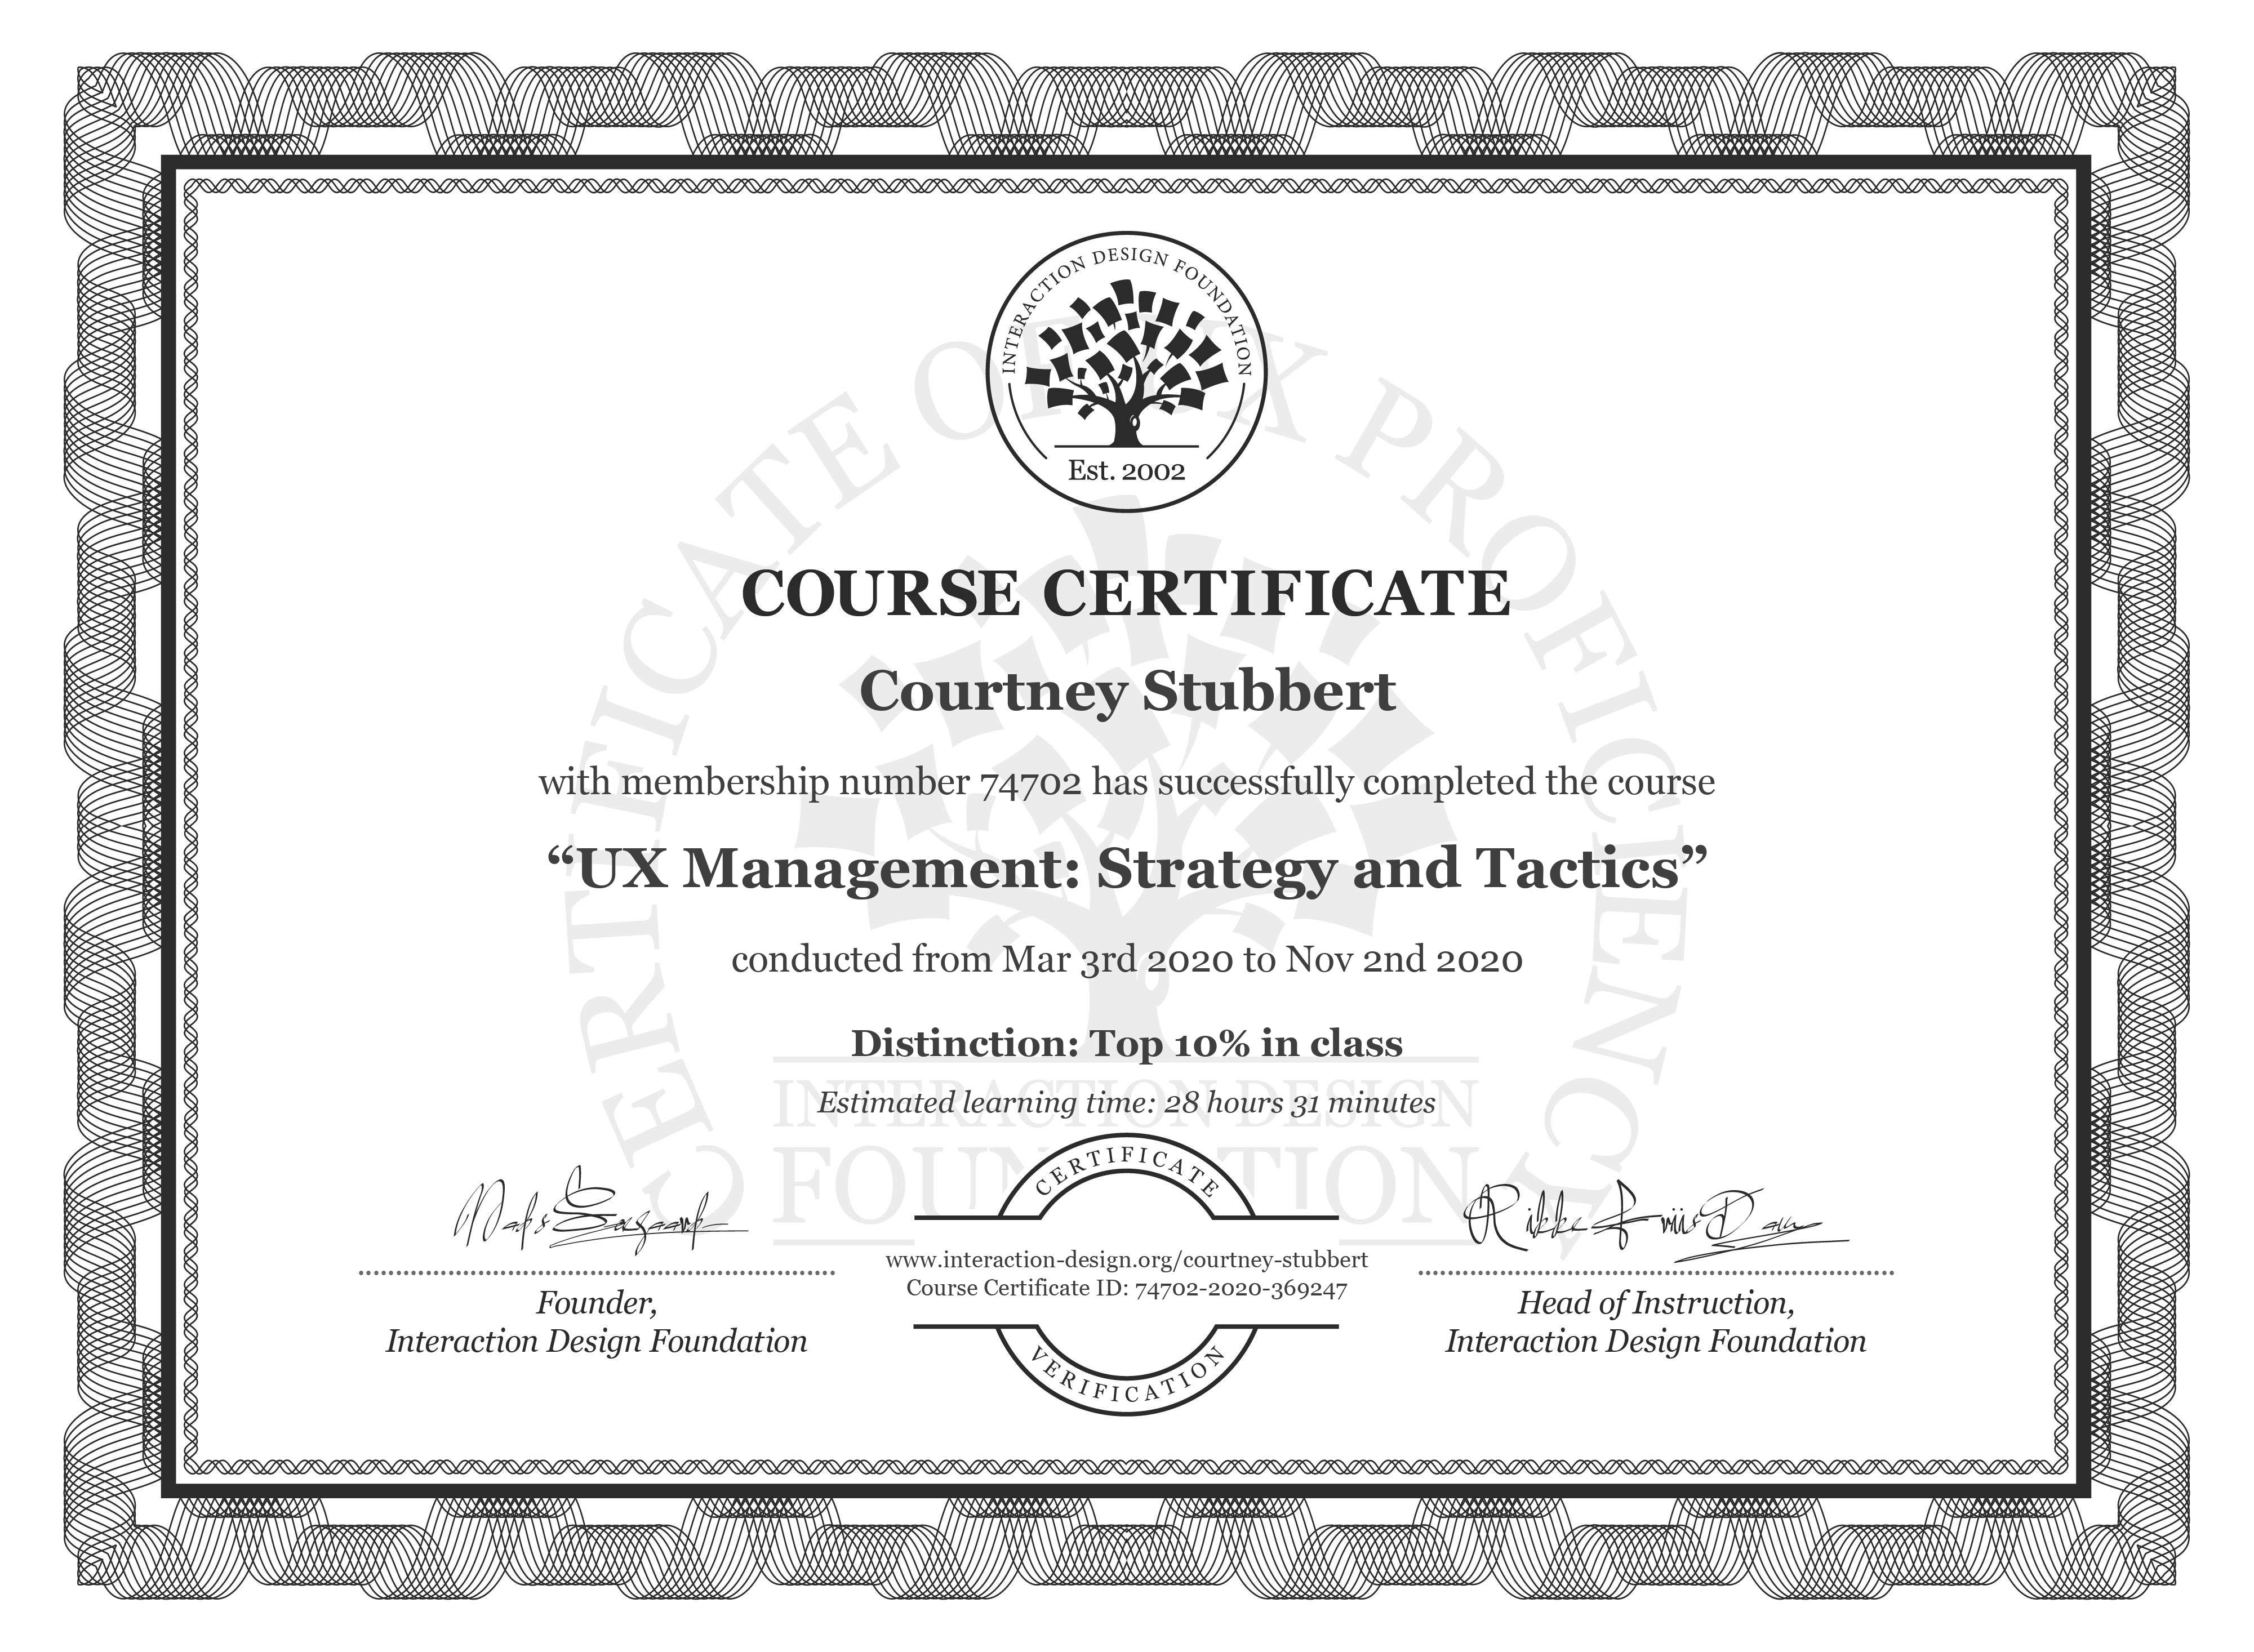 Courtney Stubbert's Course Certificate: UX Management: Strategy and Tactics